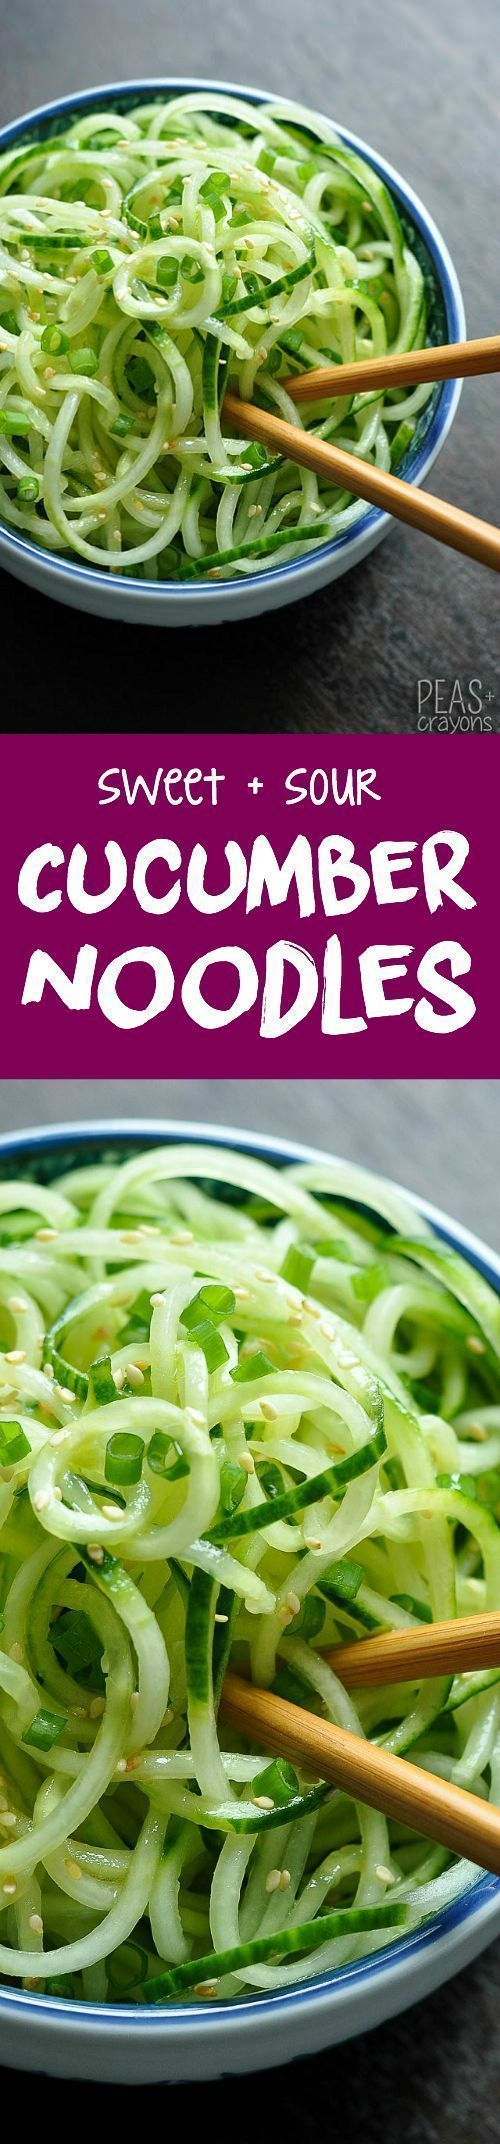 sweet and sour cucumber noodles - we cant stop making this healthy salad!